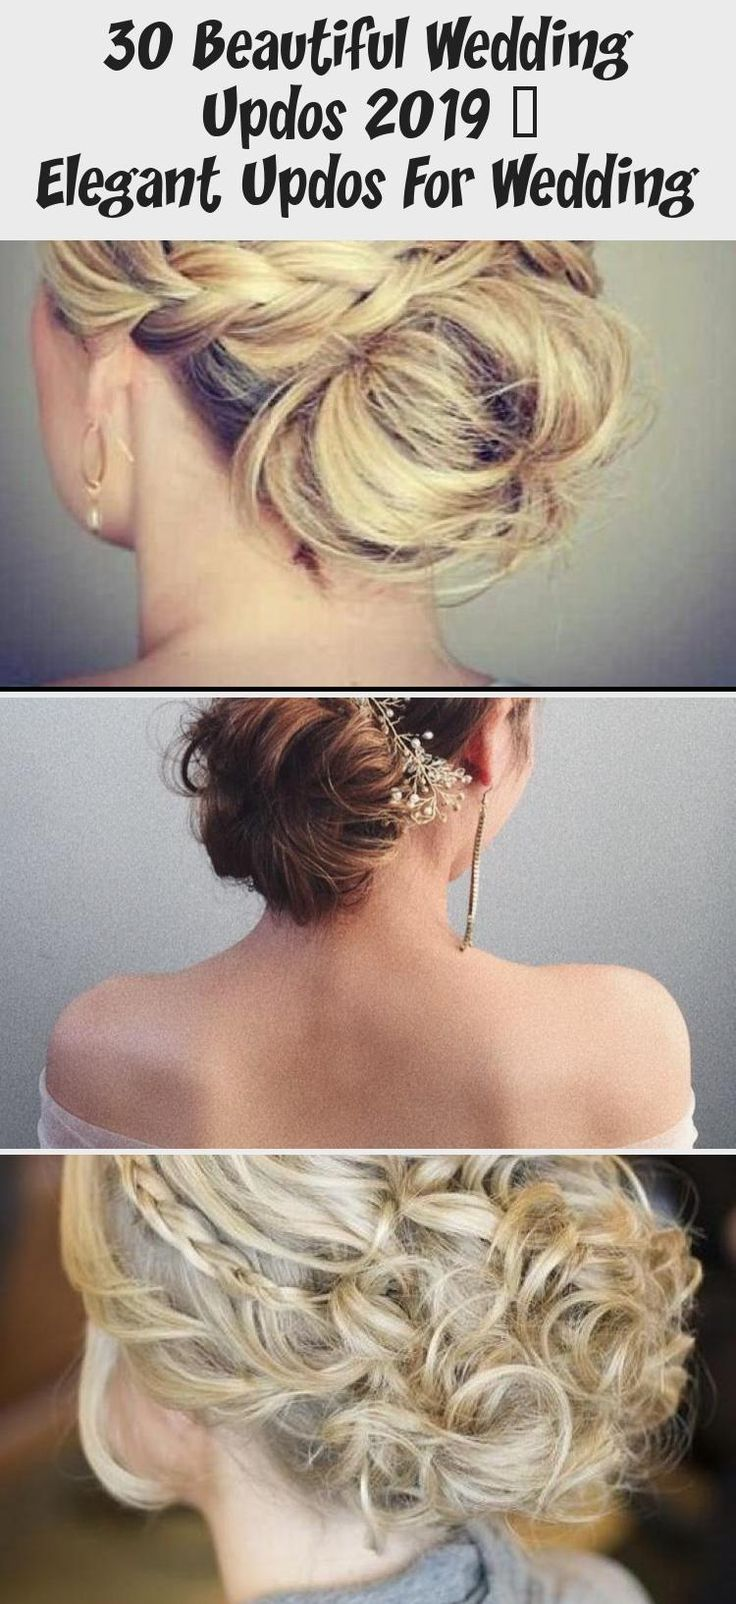 30 Beautiful Wedding Updos 2019 – Elegant Updos For Wedding